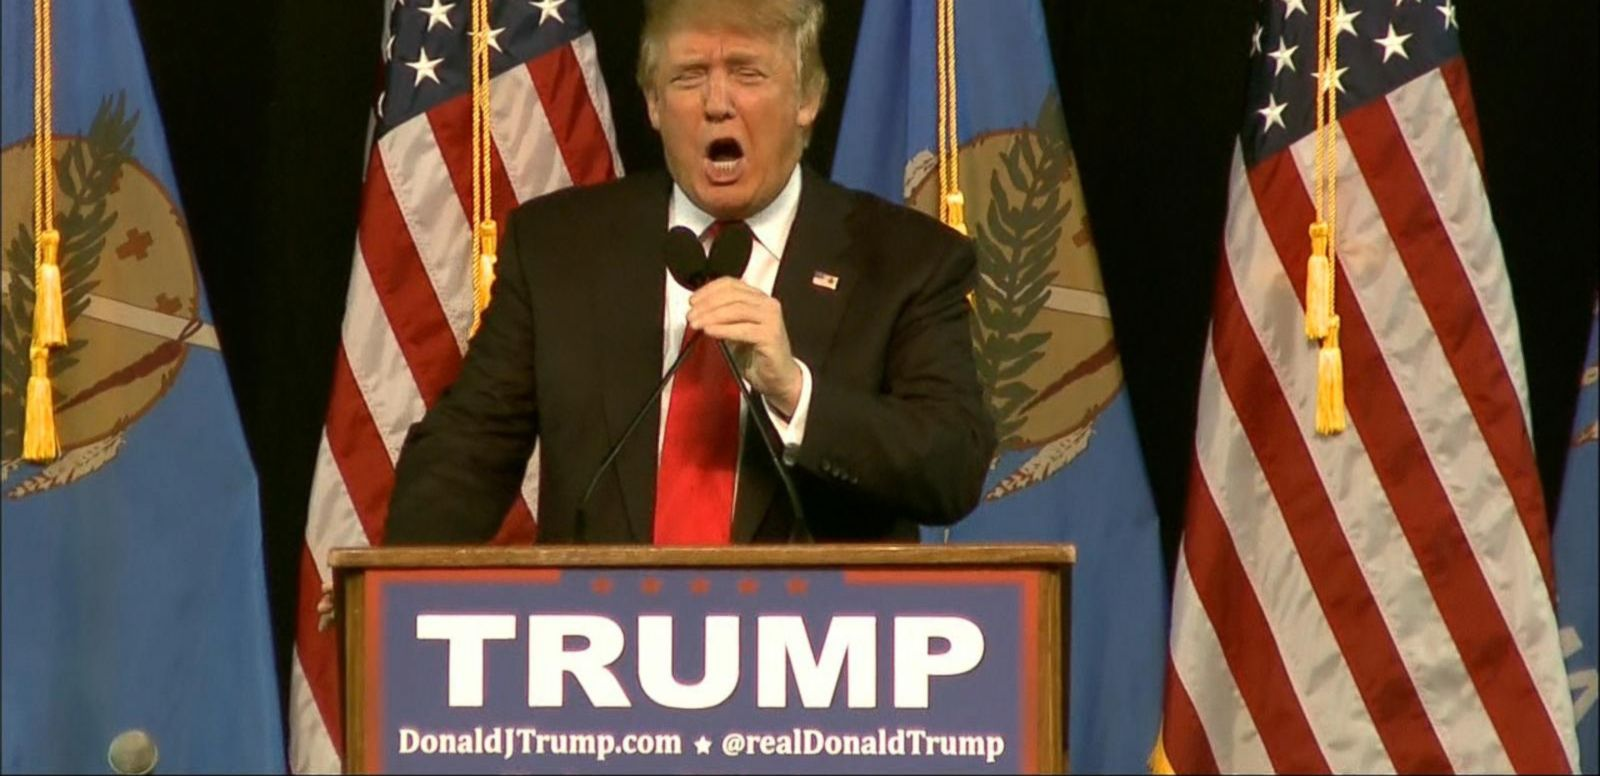 VIDEO: Donald Trump and Sarah Palin Hit the Campaign Trail